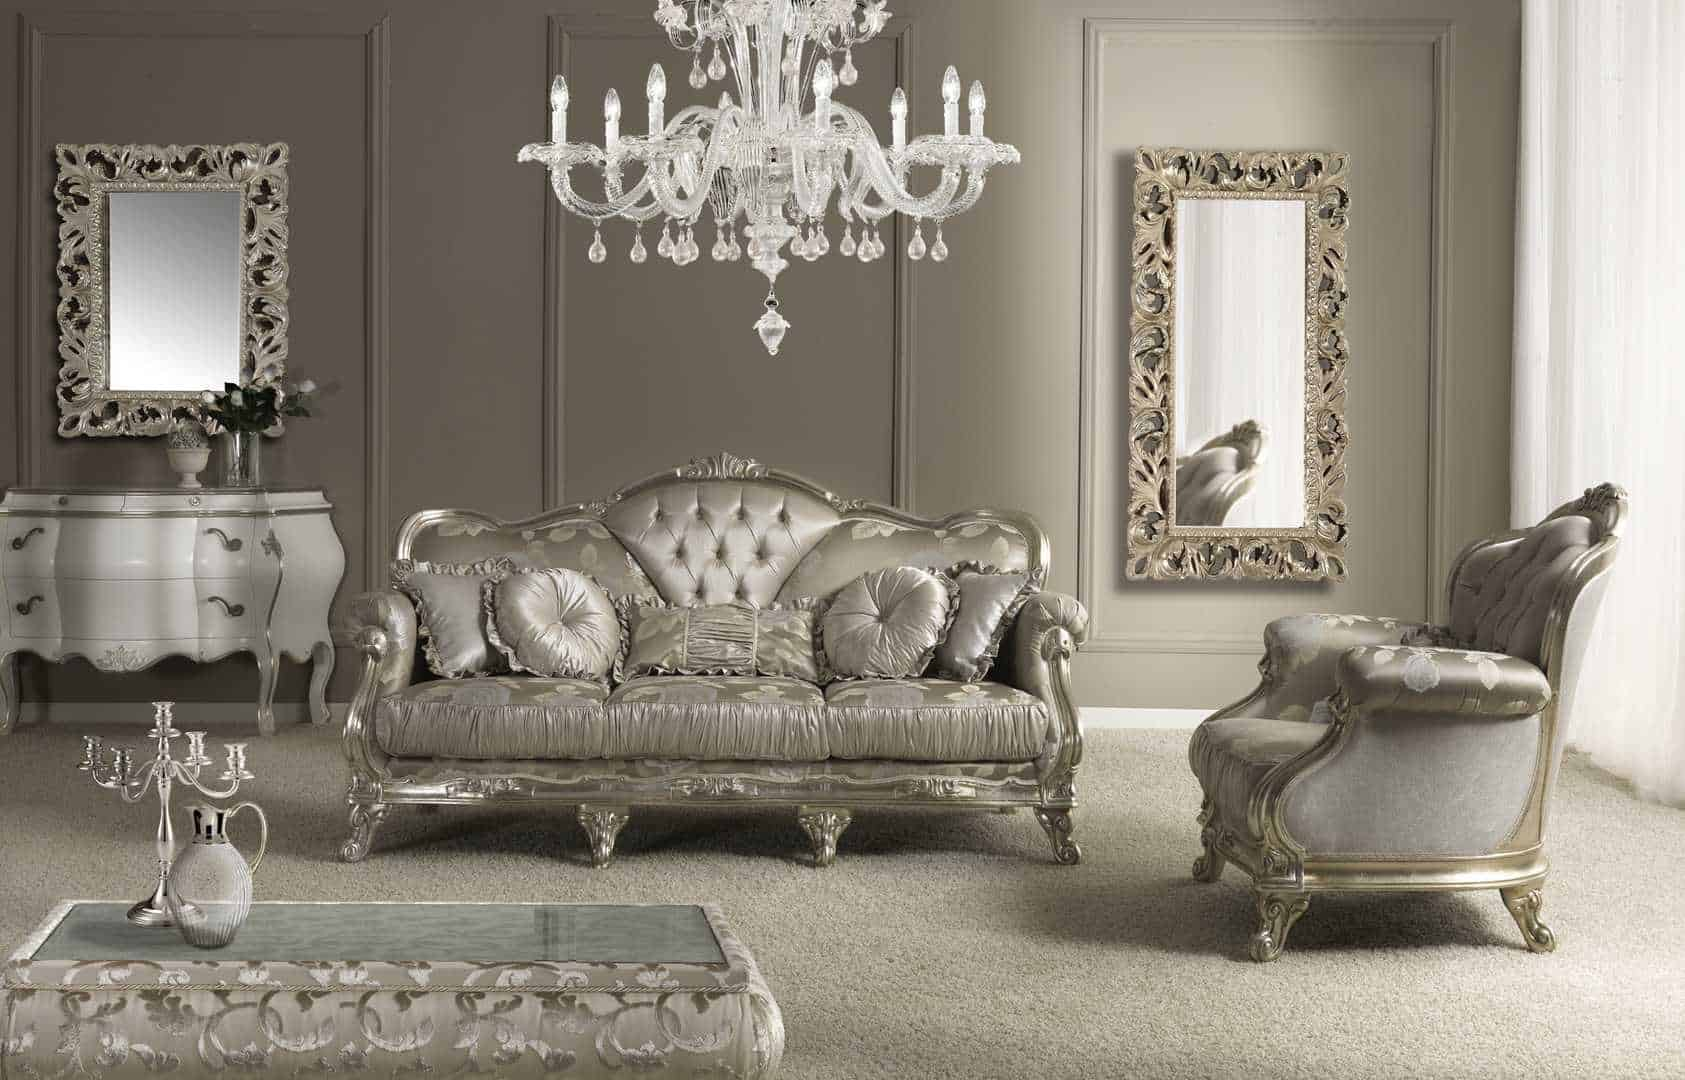 Italian Sofa Auckland Napoleone Italian Sofa Set Luxury Sofa Set Made In Italy